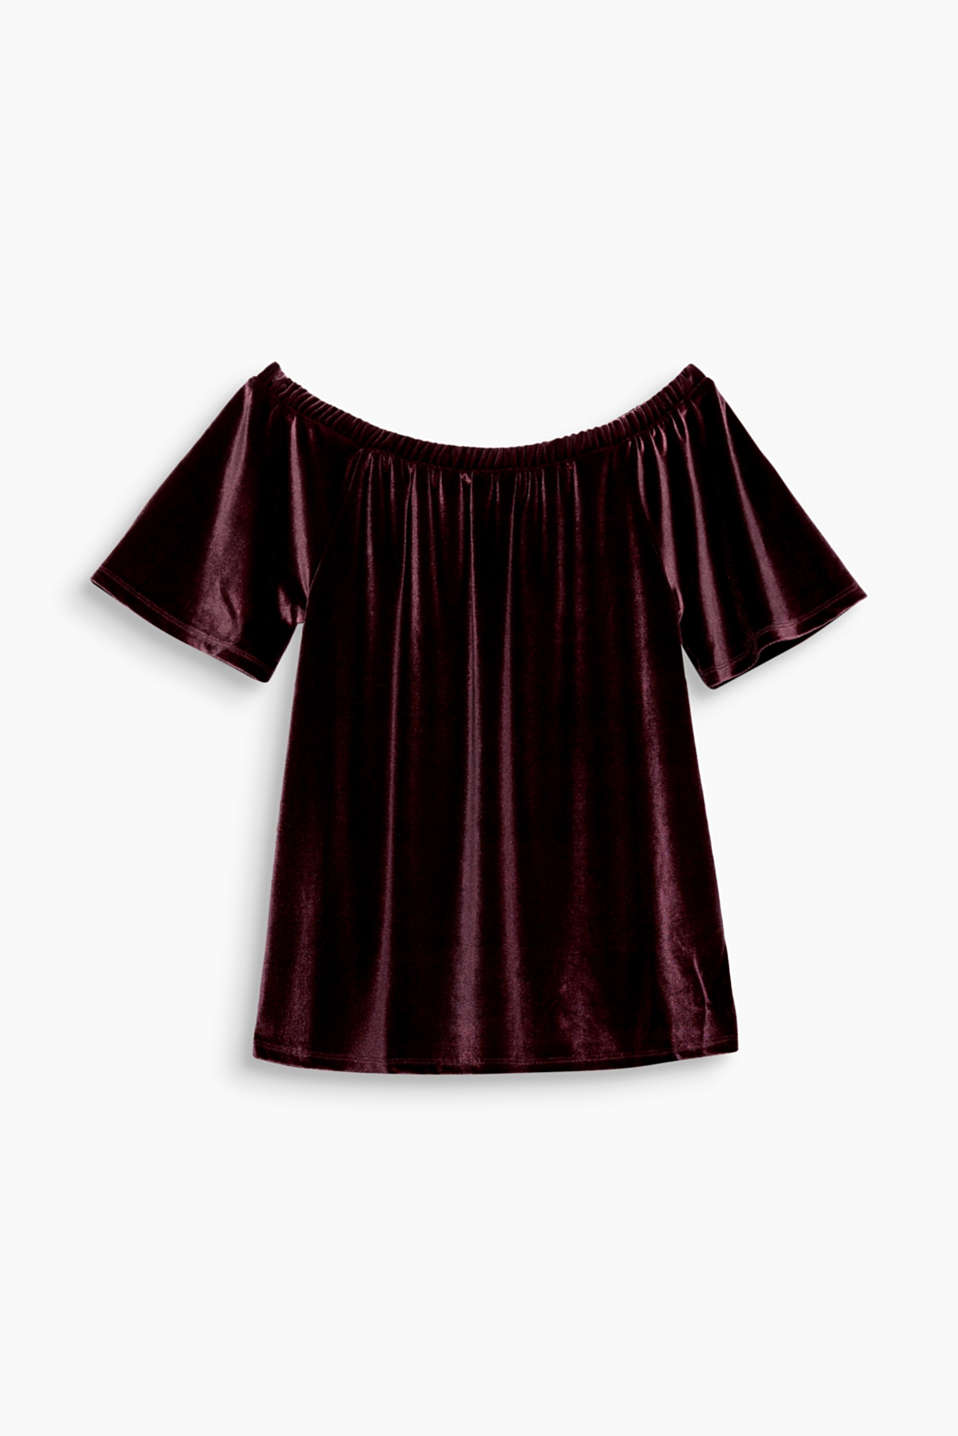 For your perfect party look: this off-shoulder top in stretchy velvet is feminine, glamorous and comfy all at the same time!